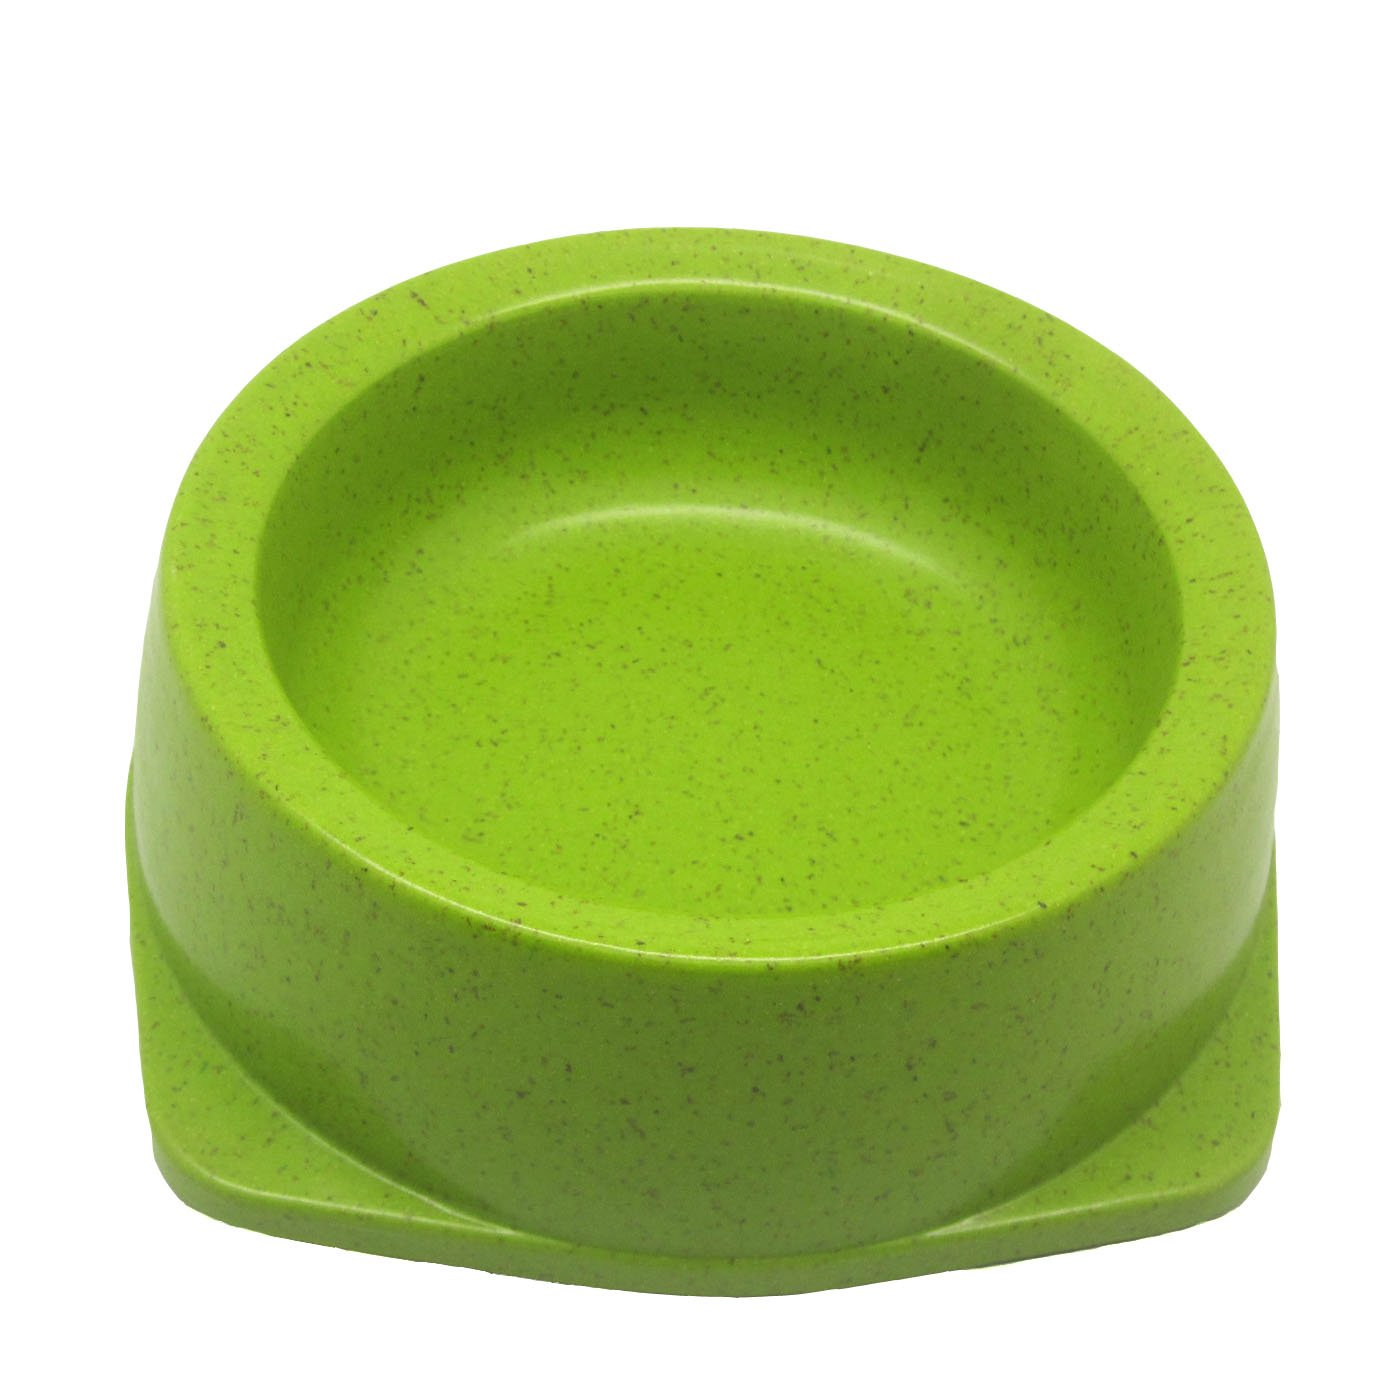 Alfie Pet by Petoga Couture - Qatie Bamboo Fiber Eco-Friendly Pet Round Bowl (for Dogs & Cats) - Color: Green, Size: L